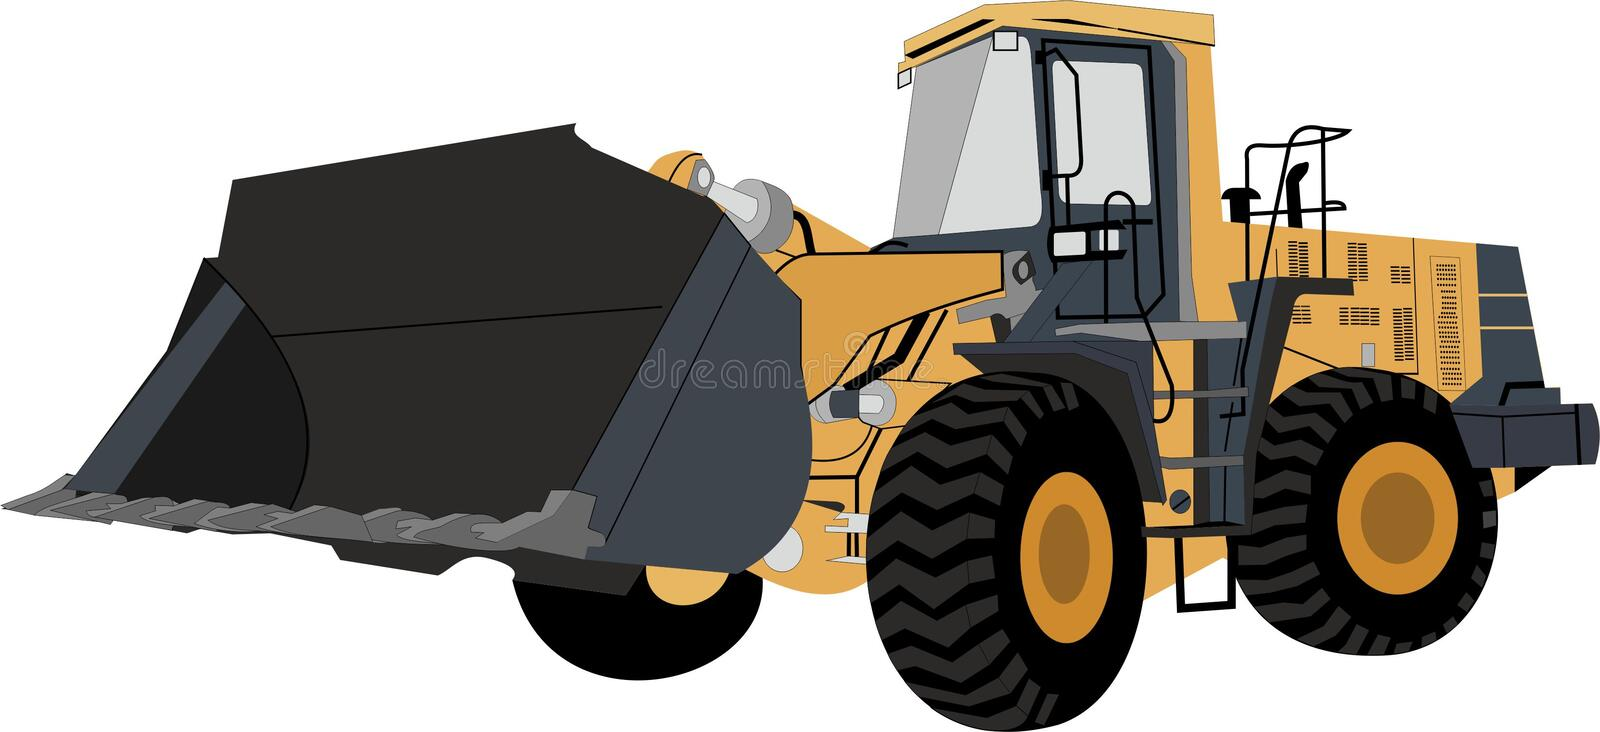 Vector illustration, isometric, yellow bulldozer tractor, construction machine, bulldozer vector illustration